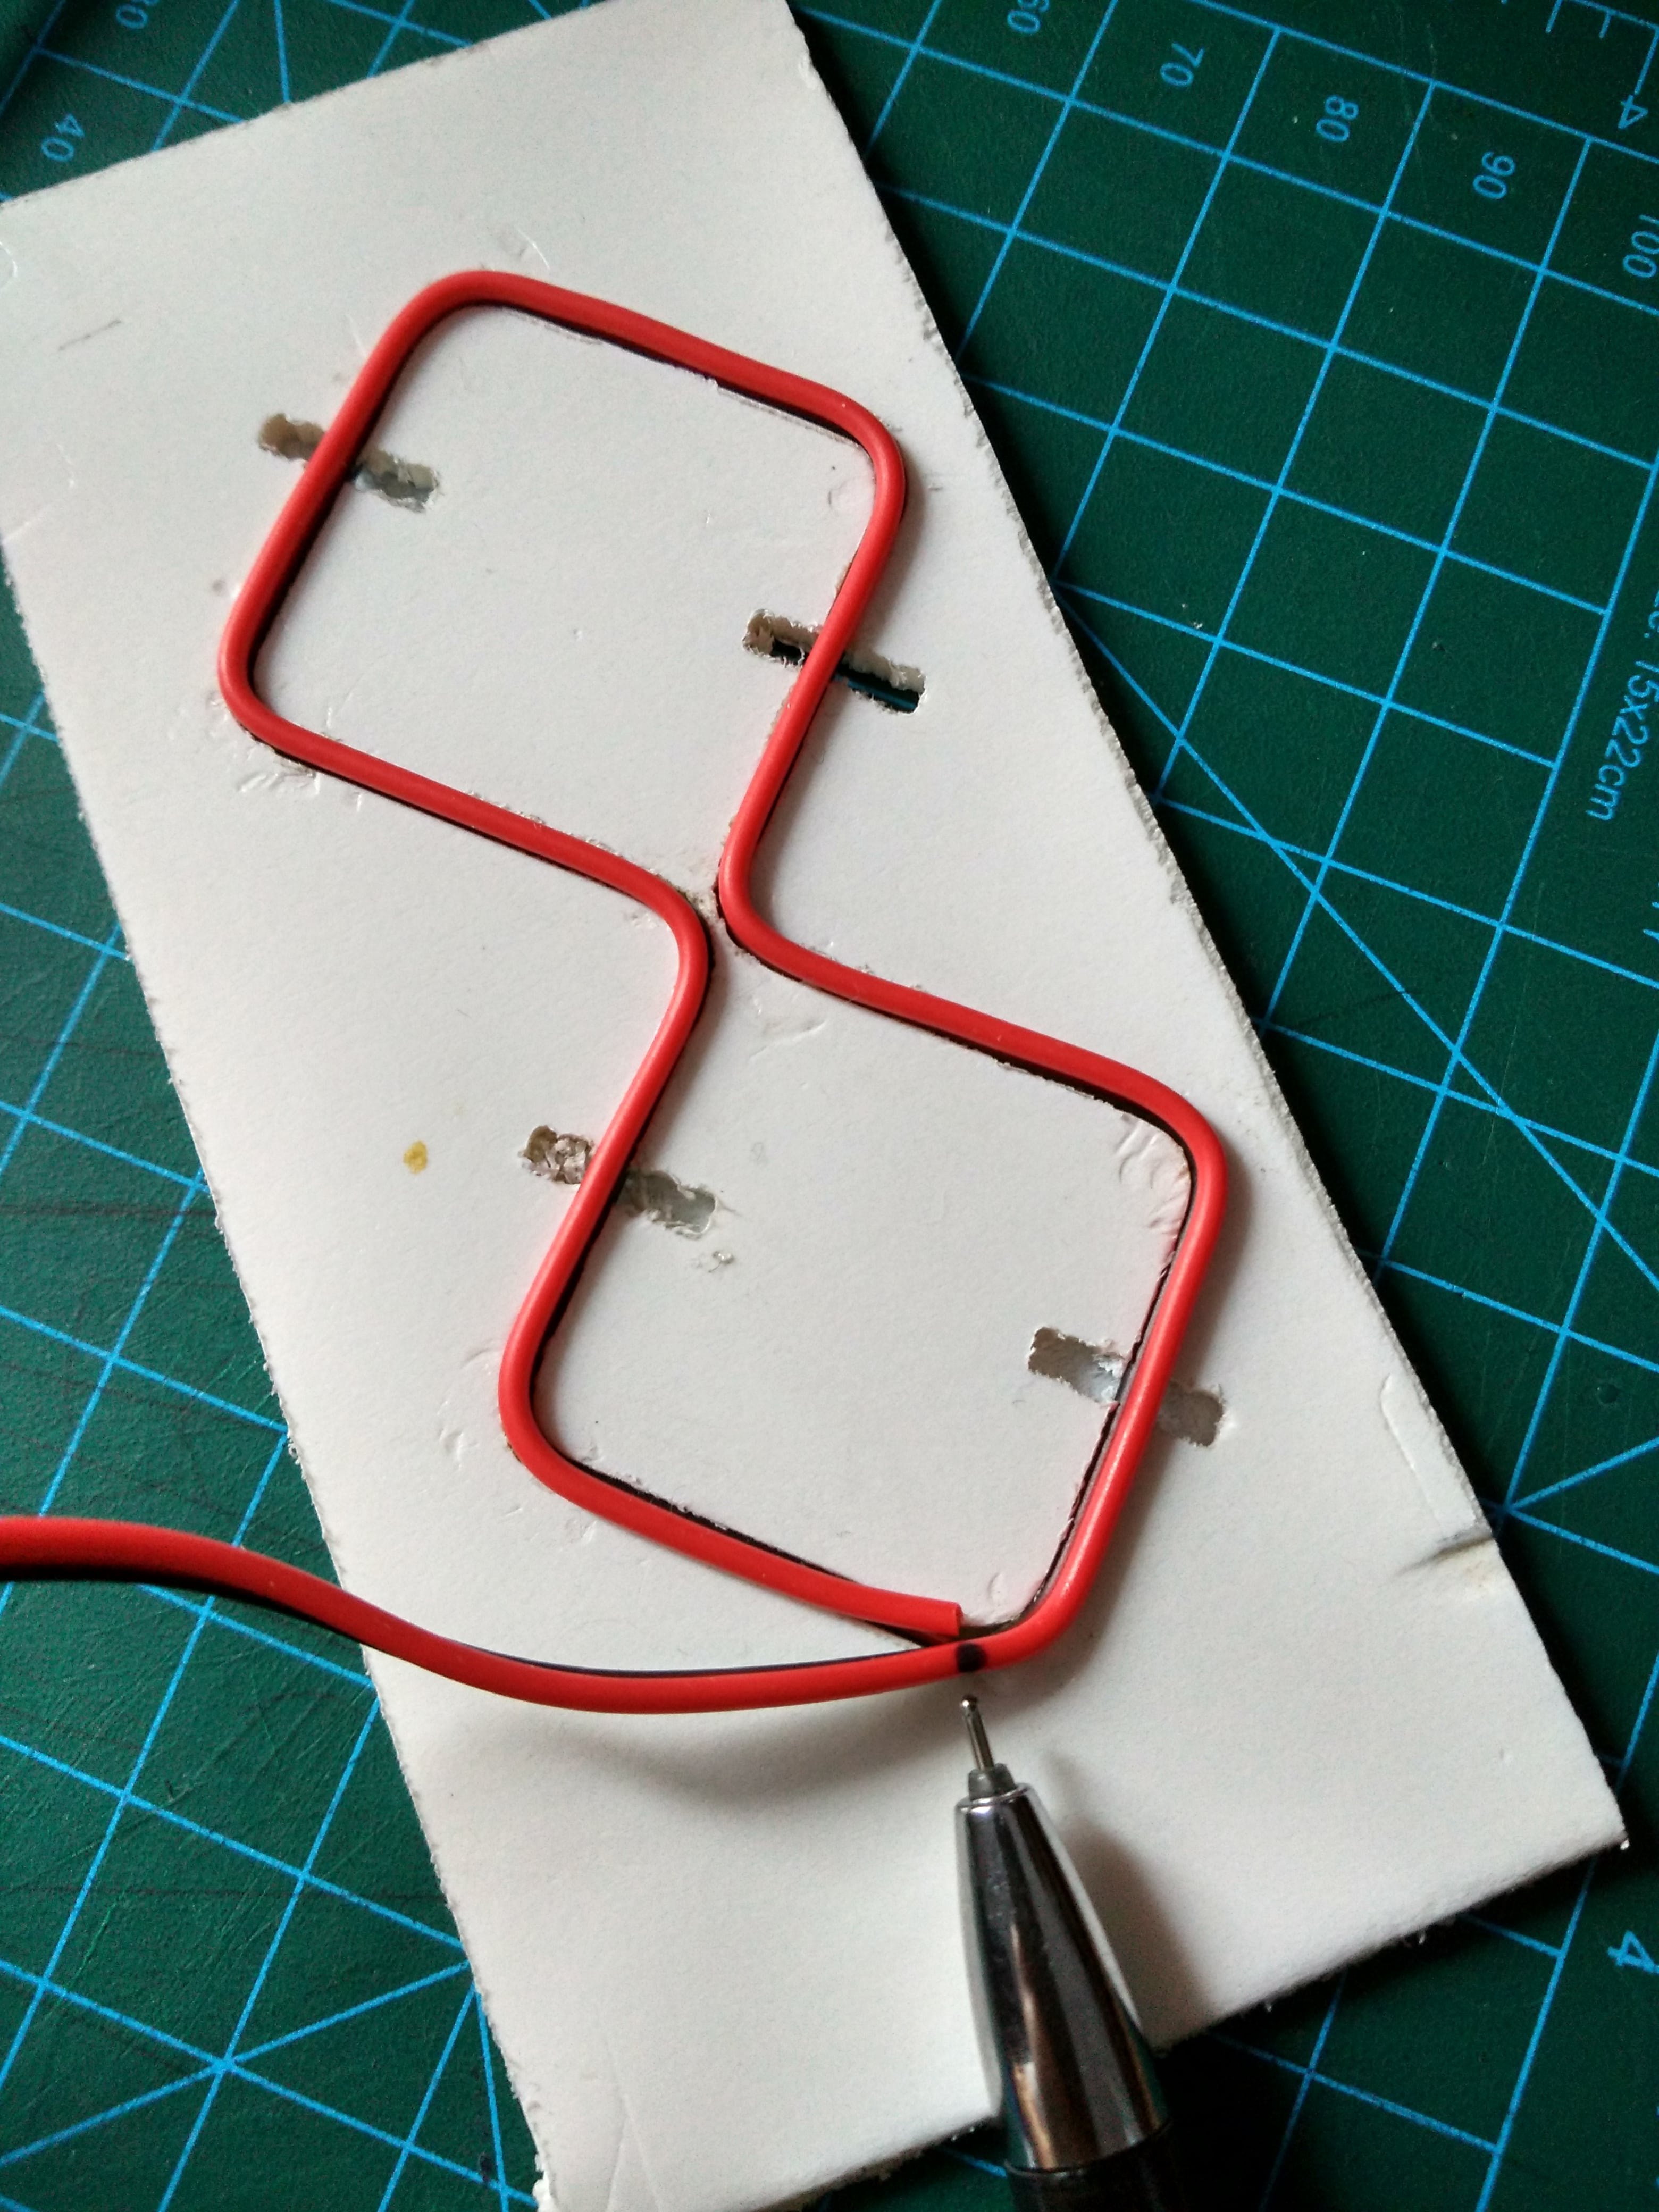 22AWG in antenna template